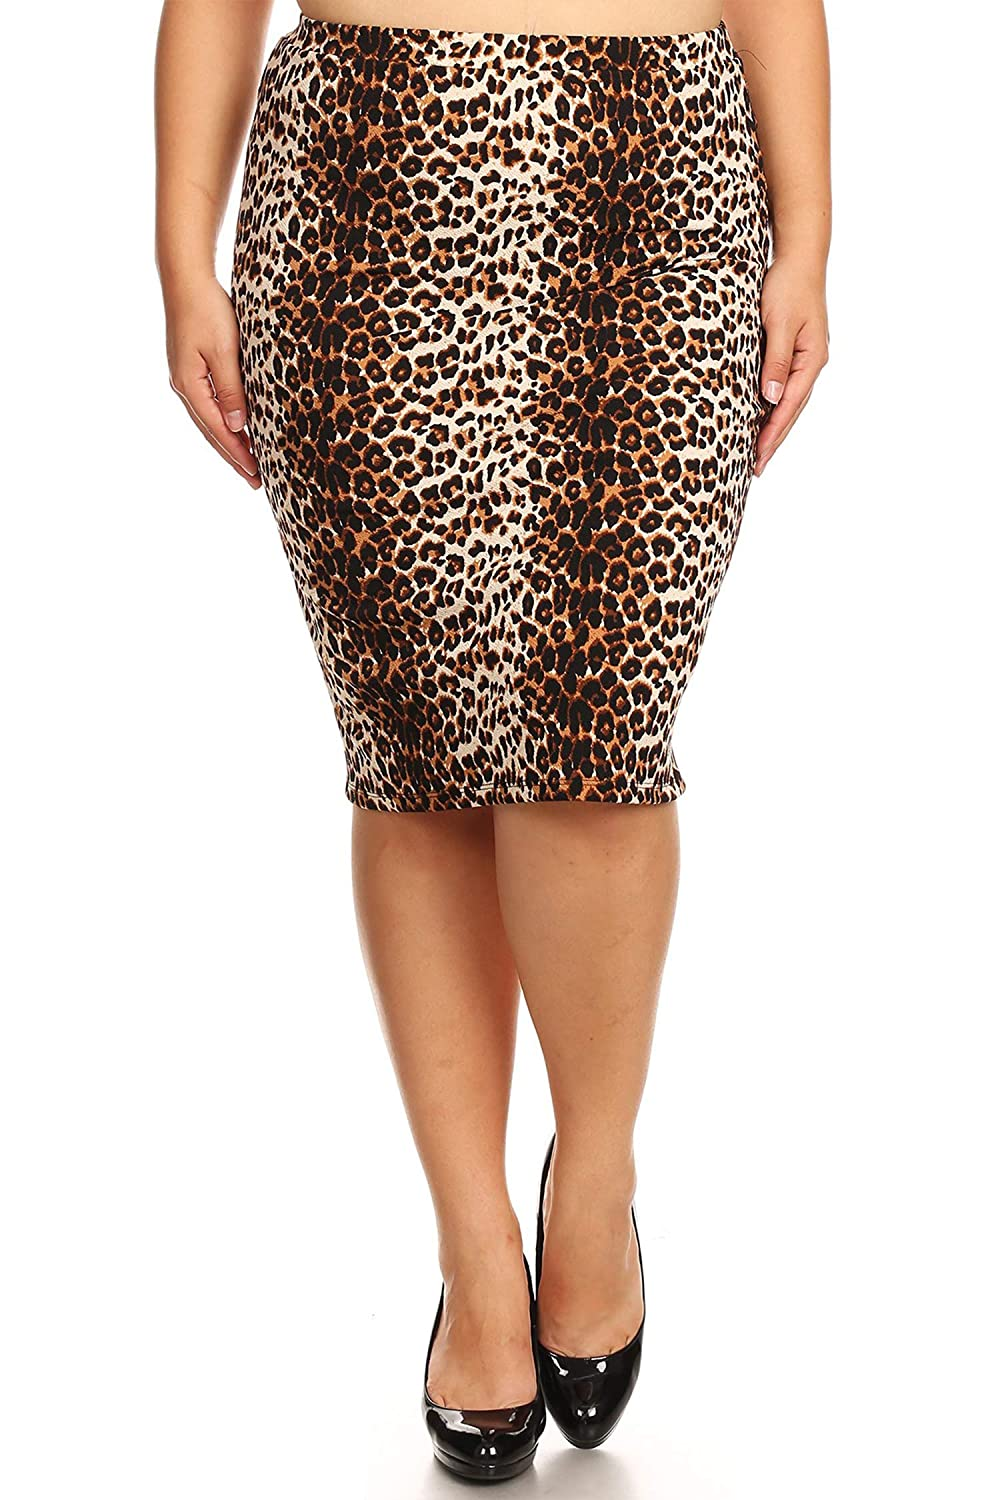 68f67f7088 Women's Plus Size Floral Pattern Print Casual Stretch Midi Pencil Skirt/Made  in USA at Amazon Women's Clothing store: